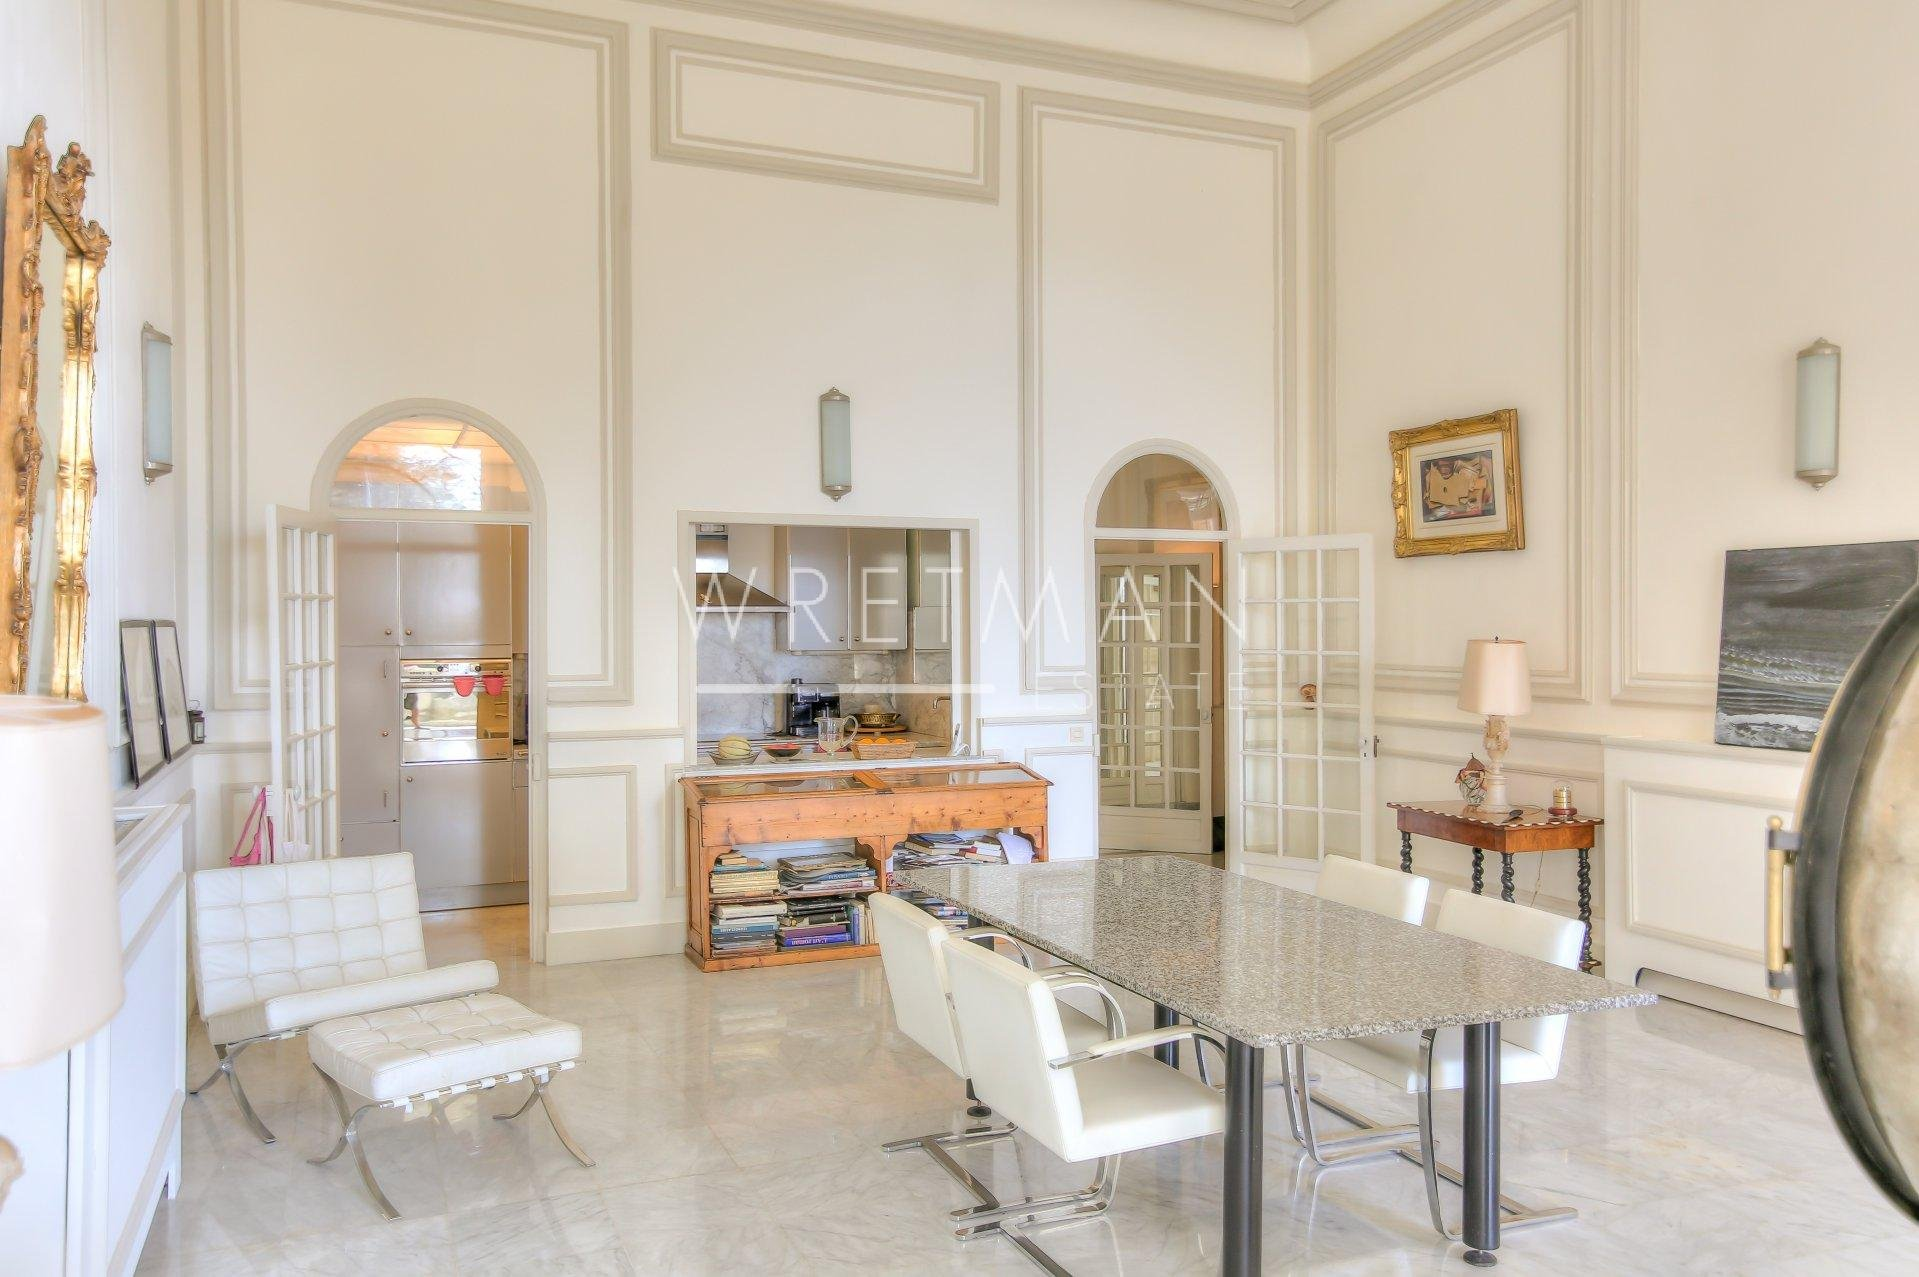 Vast 3-bedroom flat with sea views - Menton Garavan